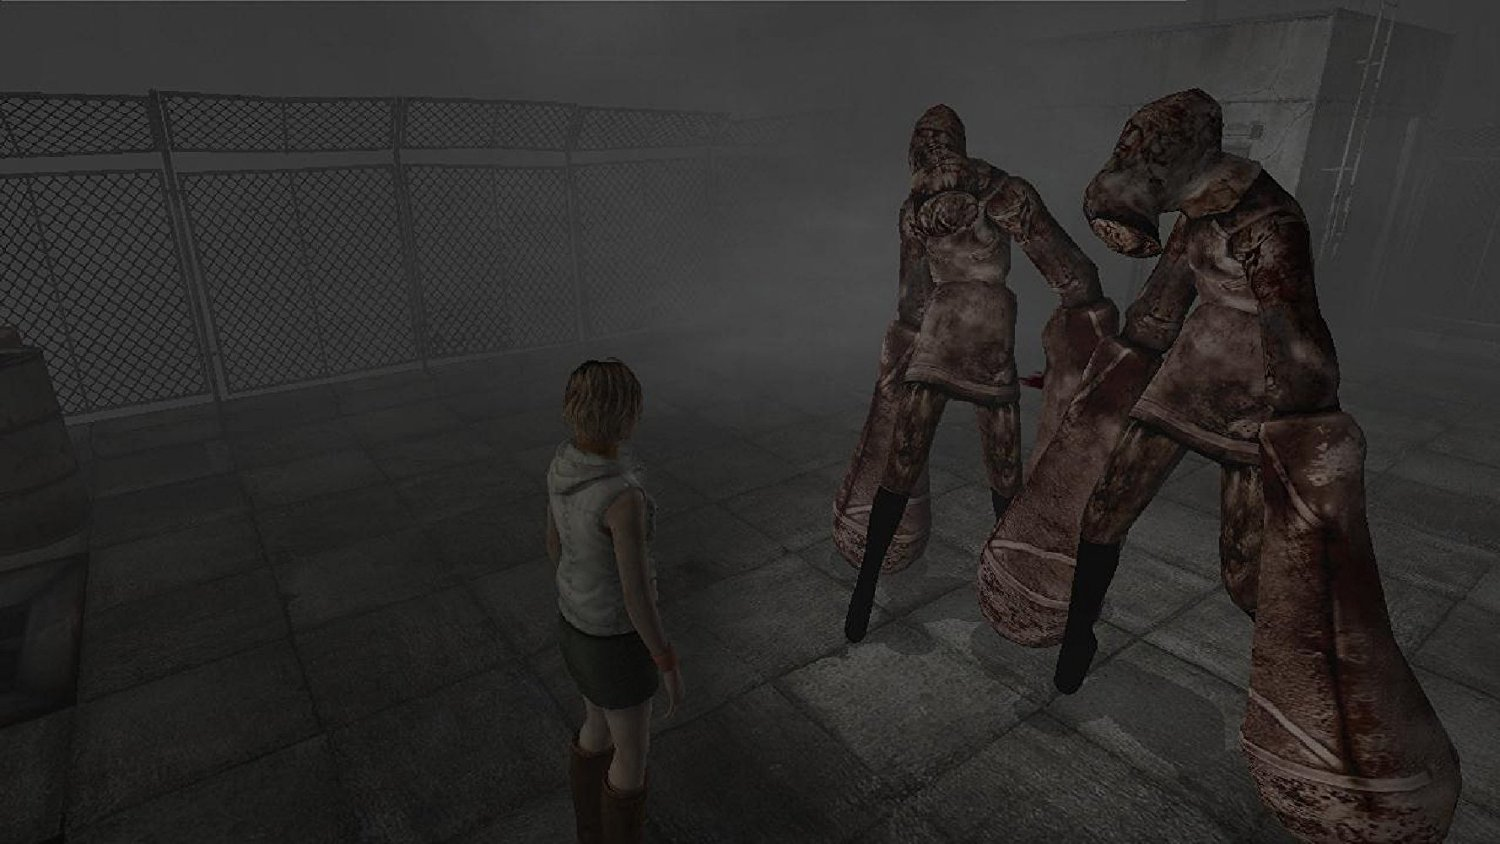 Silent Hill Games Become Backward Compatible on Xbox One